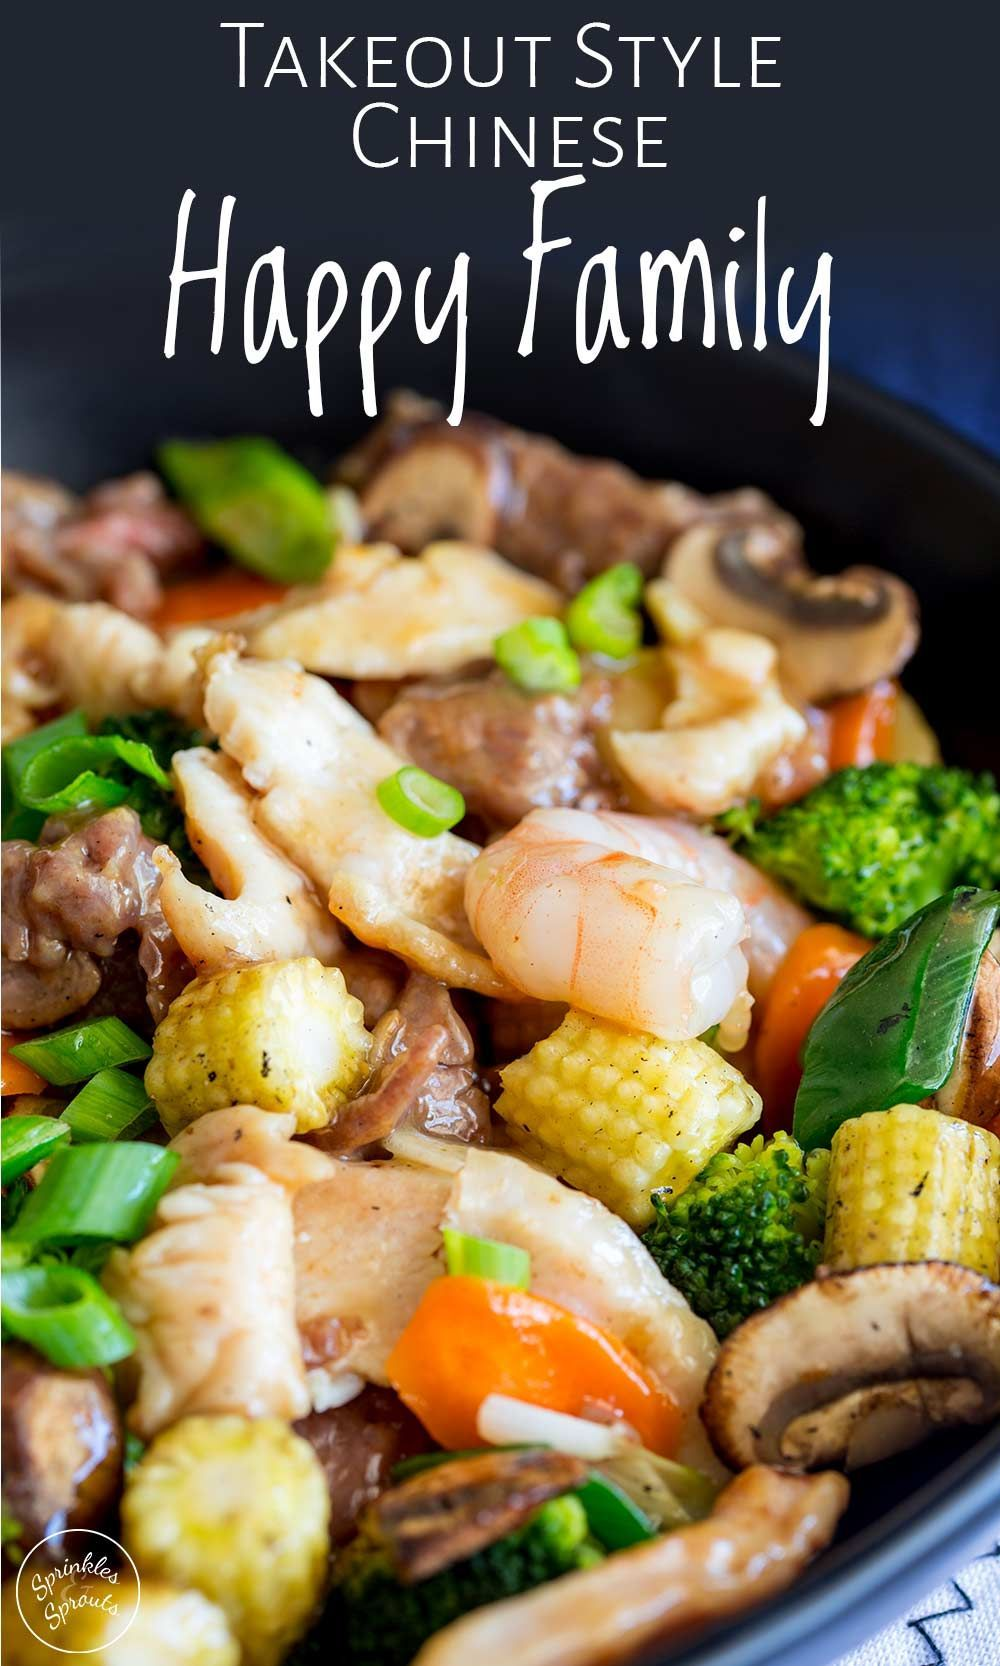 Chinese Takeout Style Happy Family Stir Fry | Sprinkles and Sprouts -  This Happy Family Stir Fry recipe is a wonderful combination of beef, chicken and shrimp, all cooke - #chinese #ChineseFoodRecipes #family #Fry #happy #HolidayAppetizers #HolidayDesserts #HolidayTreats #ItalianCookieRecipes #sprinkles #sprouts #Stir #style #TakeOut #VintageRecipes